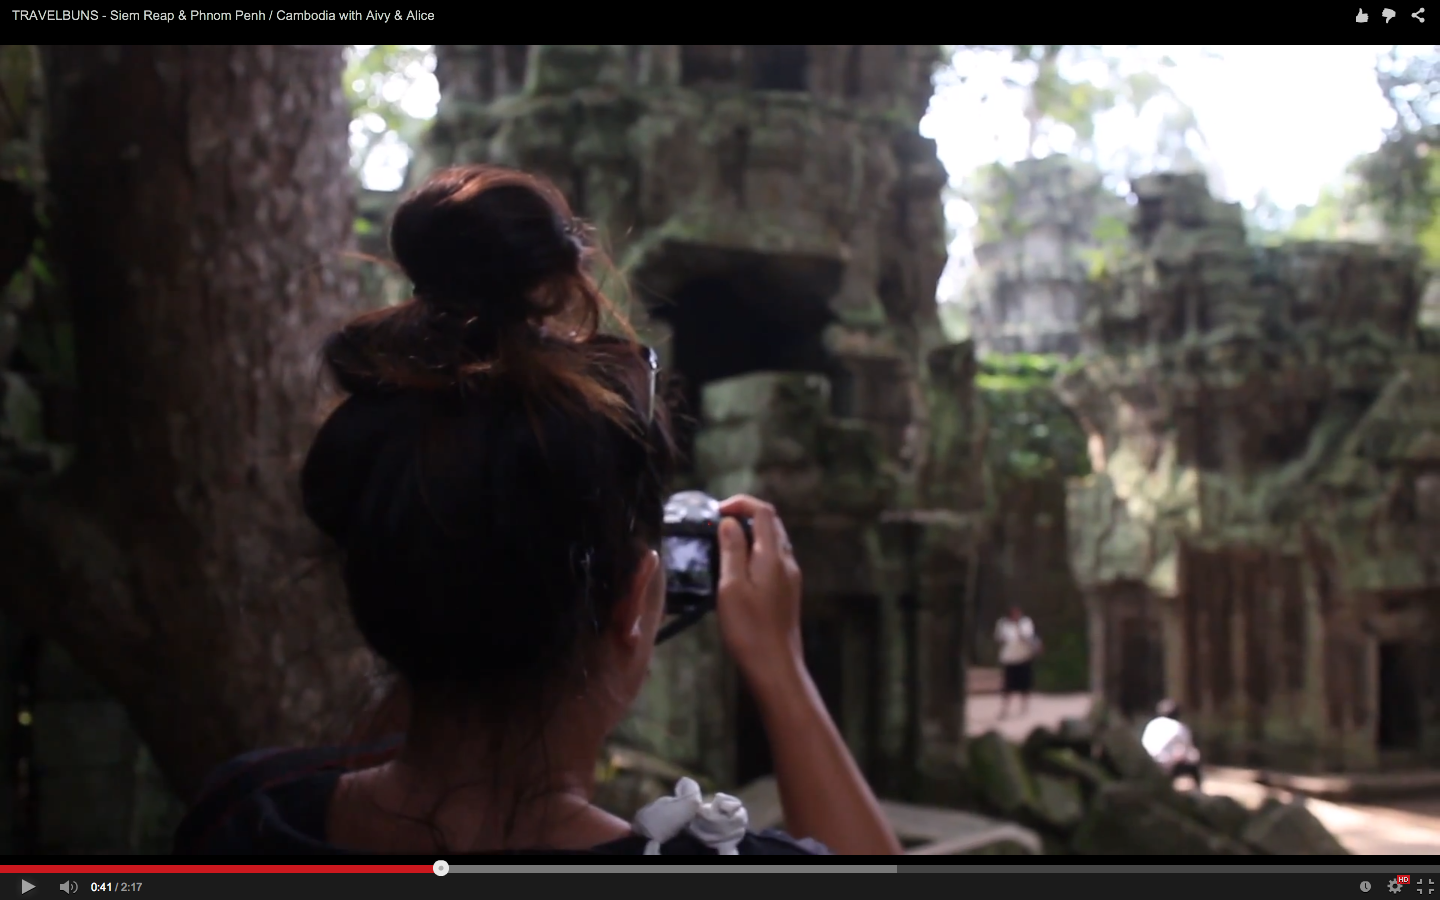 IHEARTALICE.DE – Fashion & Travel-Blog by Alice M. Huynh from Berlin/Germany: Siem Reap Travel Diary / FMA Vlog Siem Reap Cambodia / Travel Guide